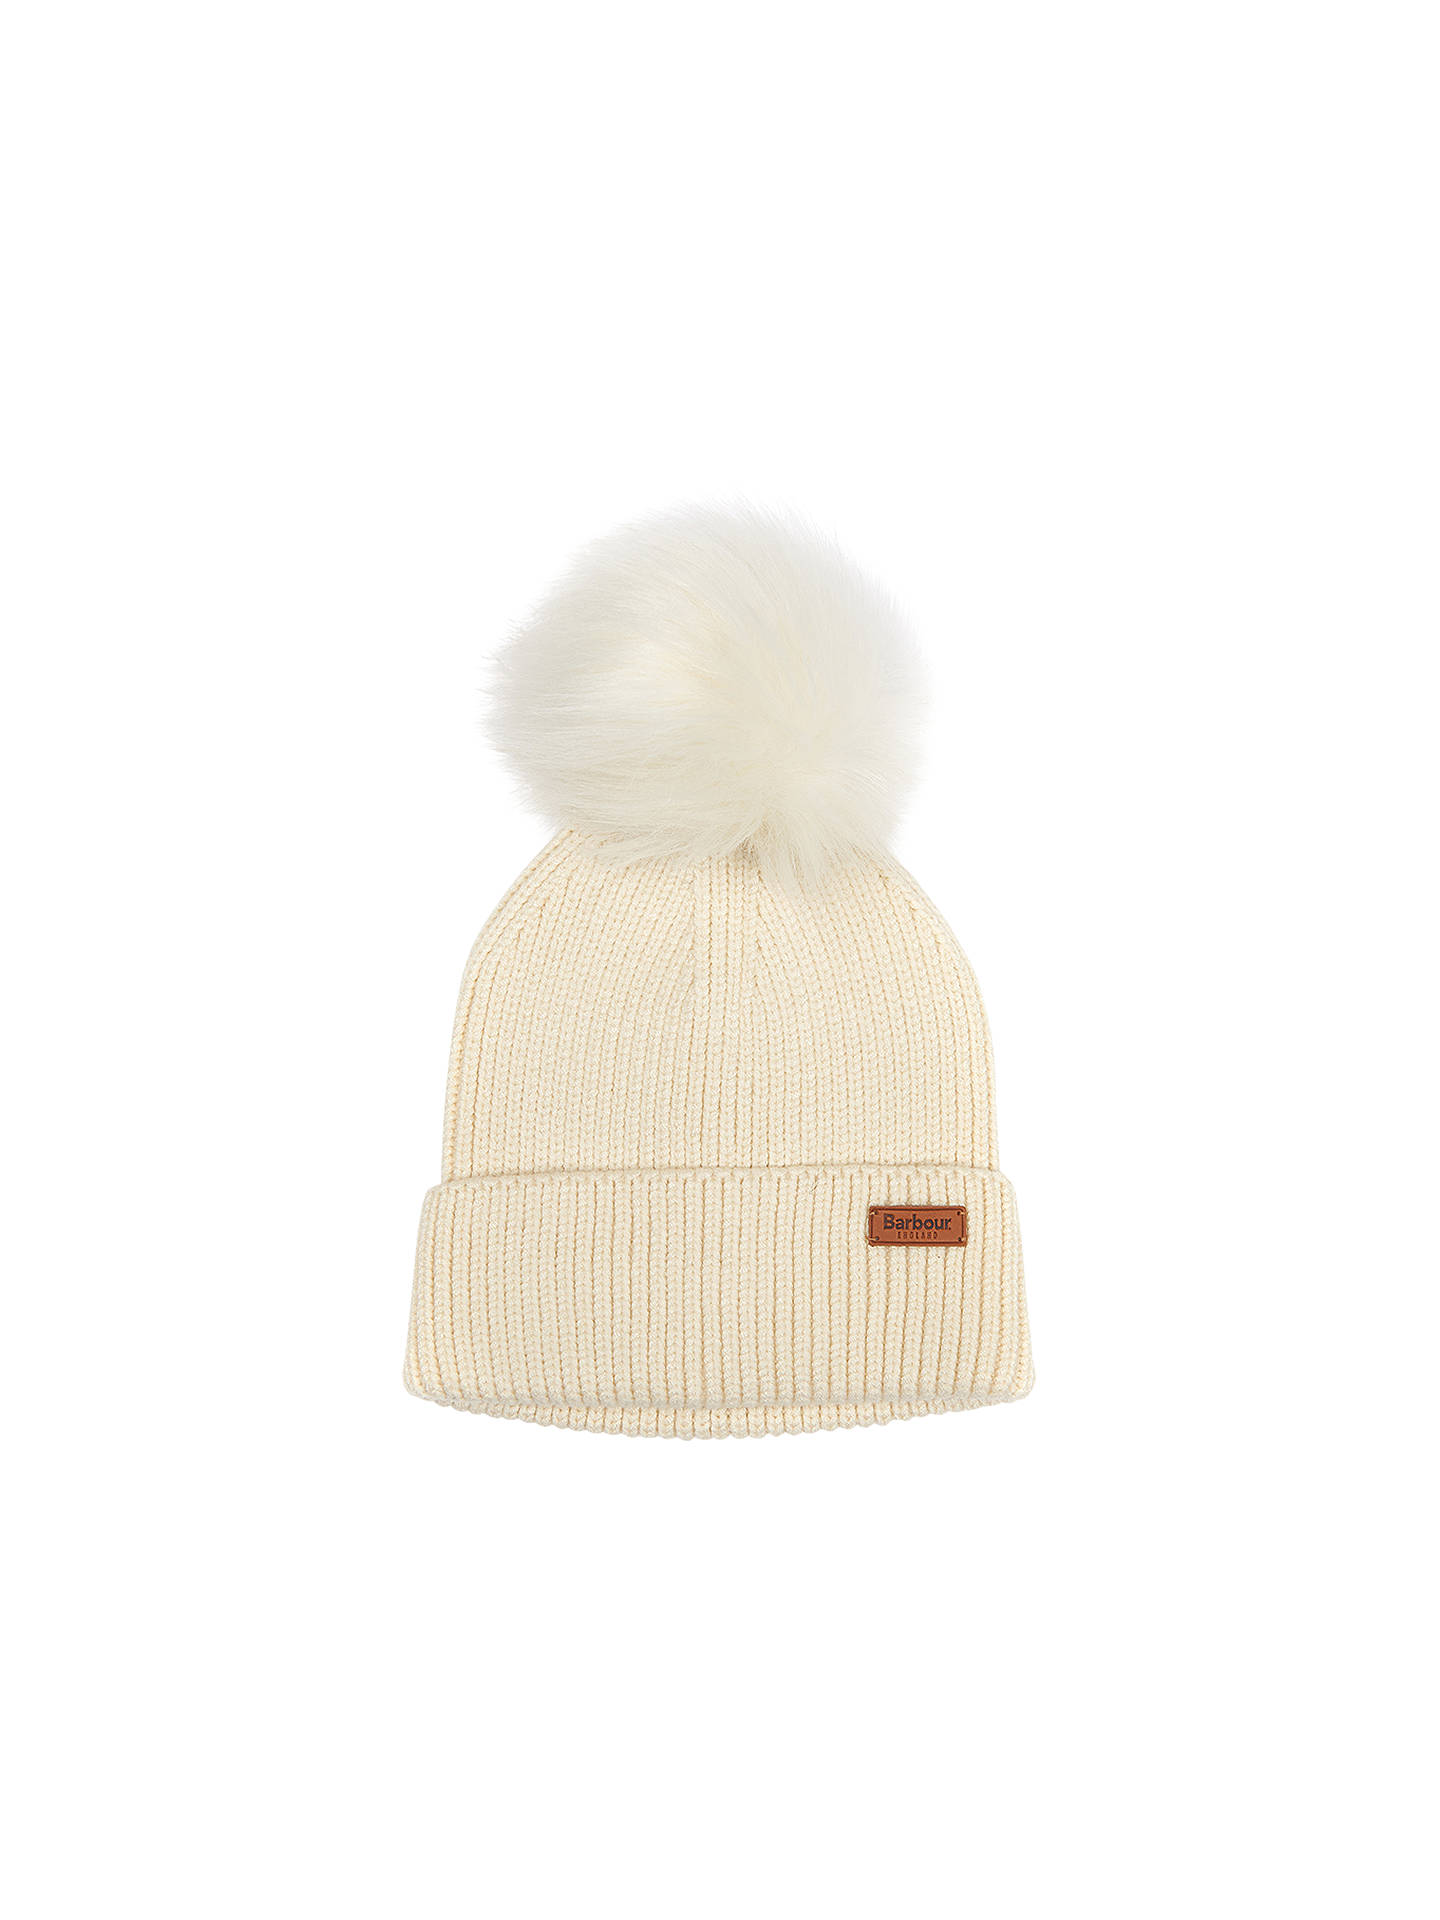 BuyBarbour Dover Pom Beanie Hat f30b516d269